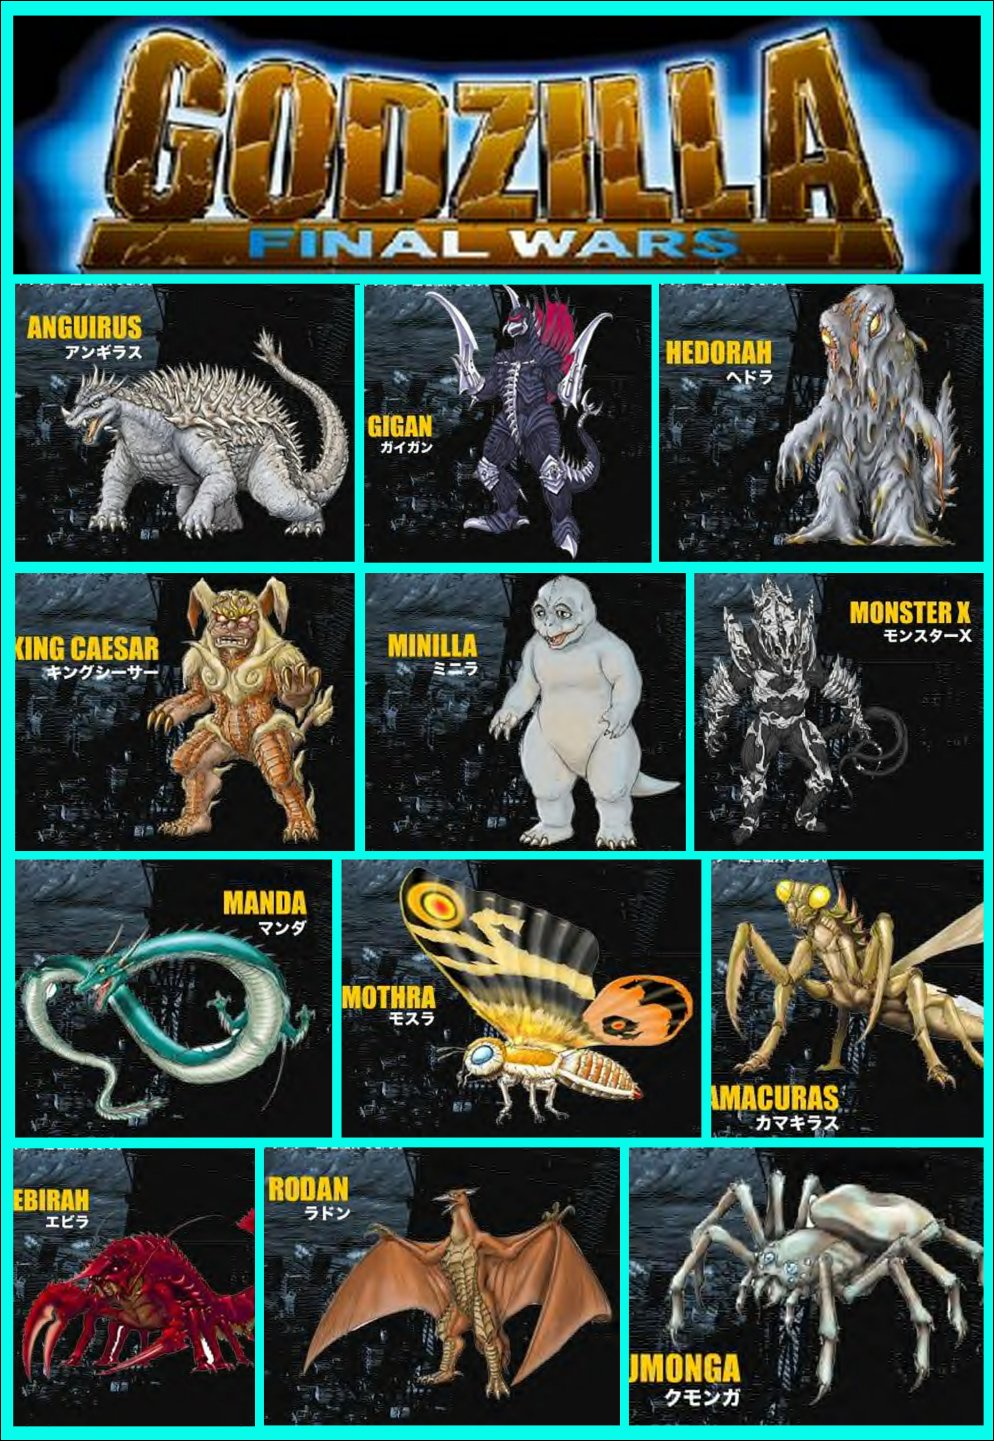 GODZILLA FINAL WARS